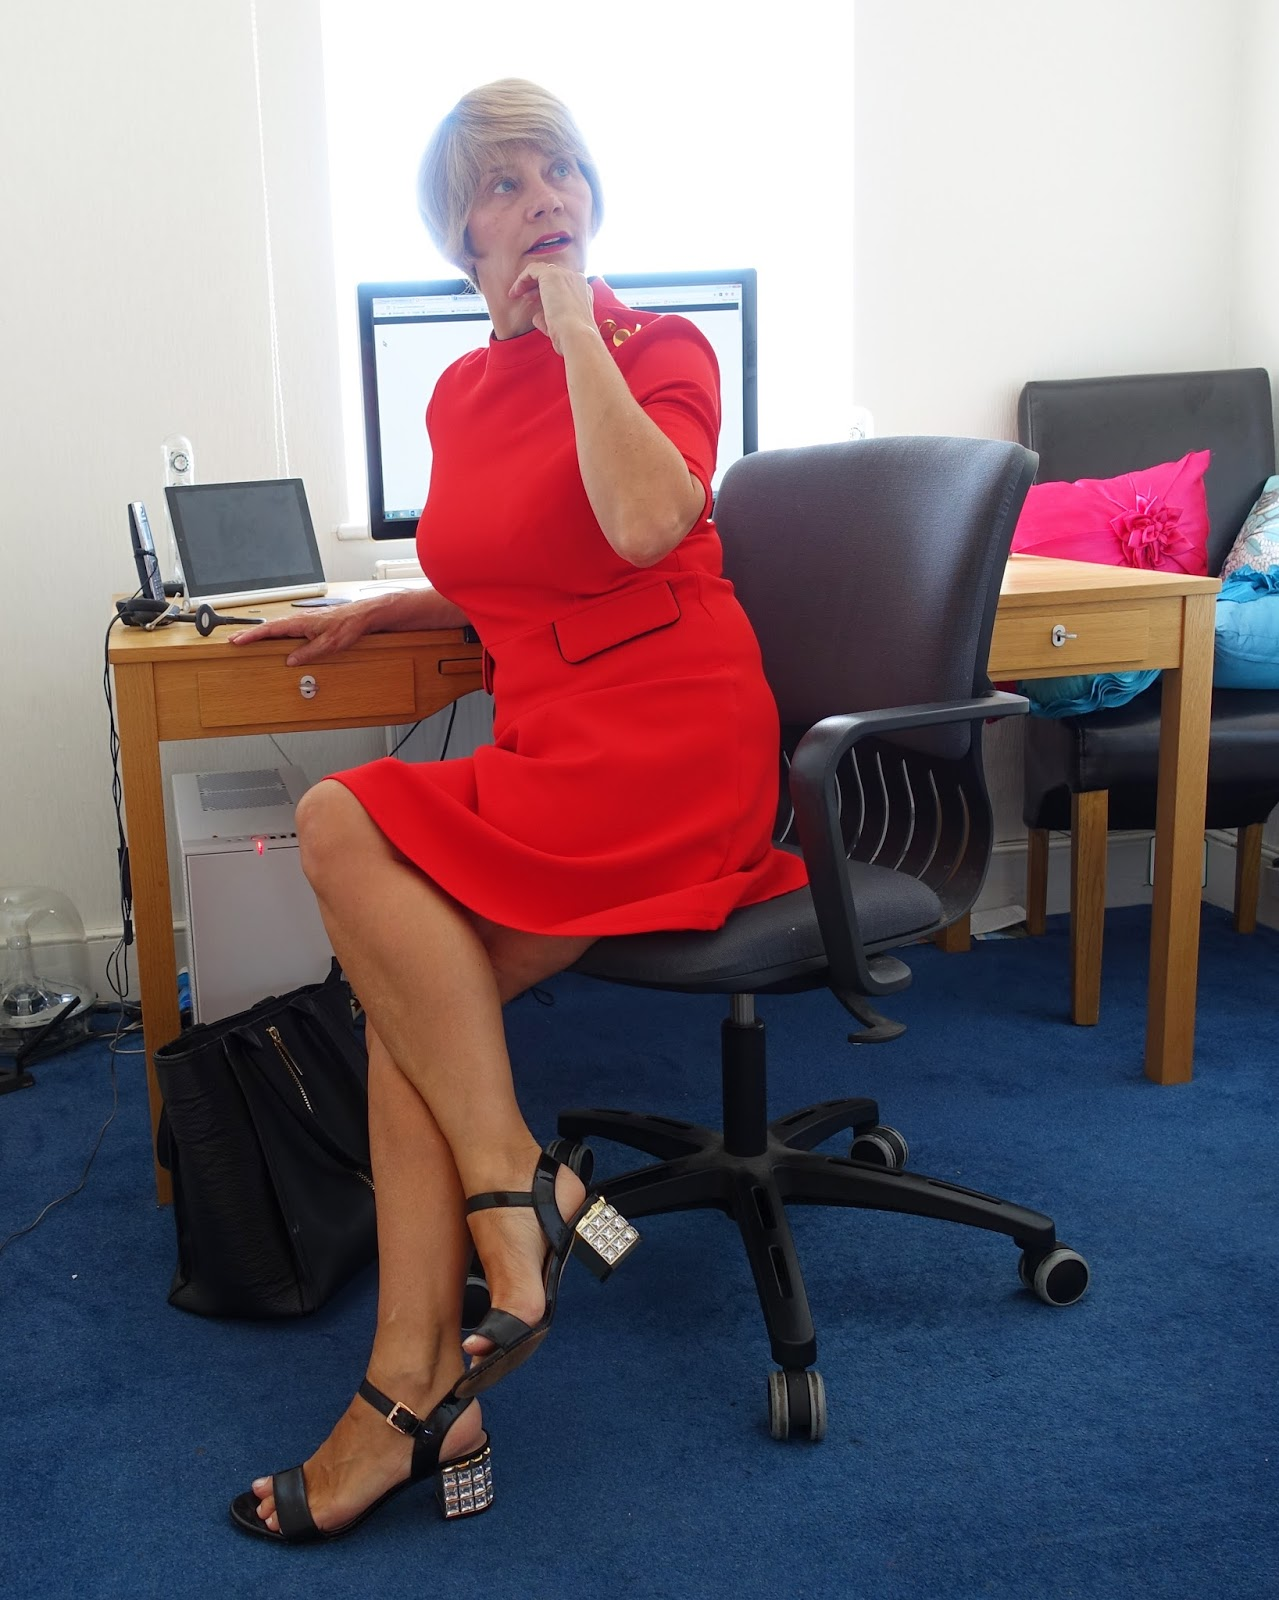 Red skater dress with gold buttons from Marks and Spencer, summer 2017: ideal workplace outfit when you want to feel confident. Worn by Gail Hanlon, over 40s blogger from Is This Mutton.com